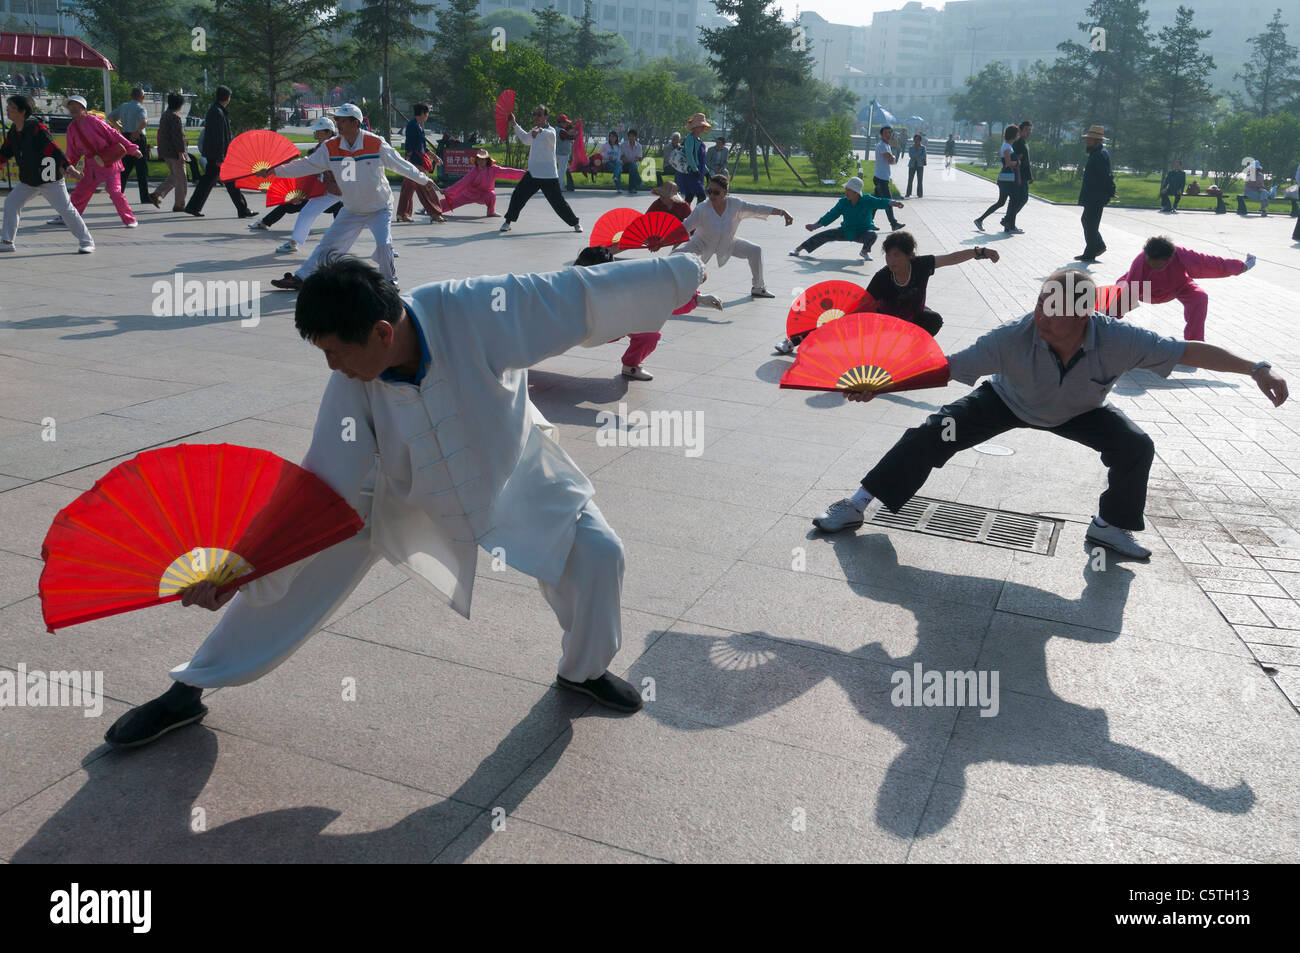 Seniors perform early morning Tai Chi, in city park, Xining, Qinghai Province, China - Stock Image